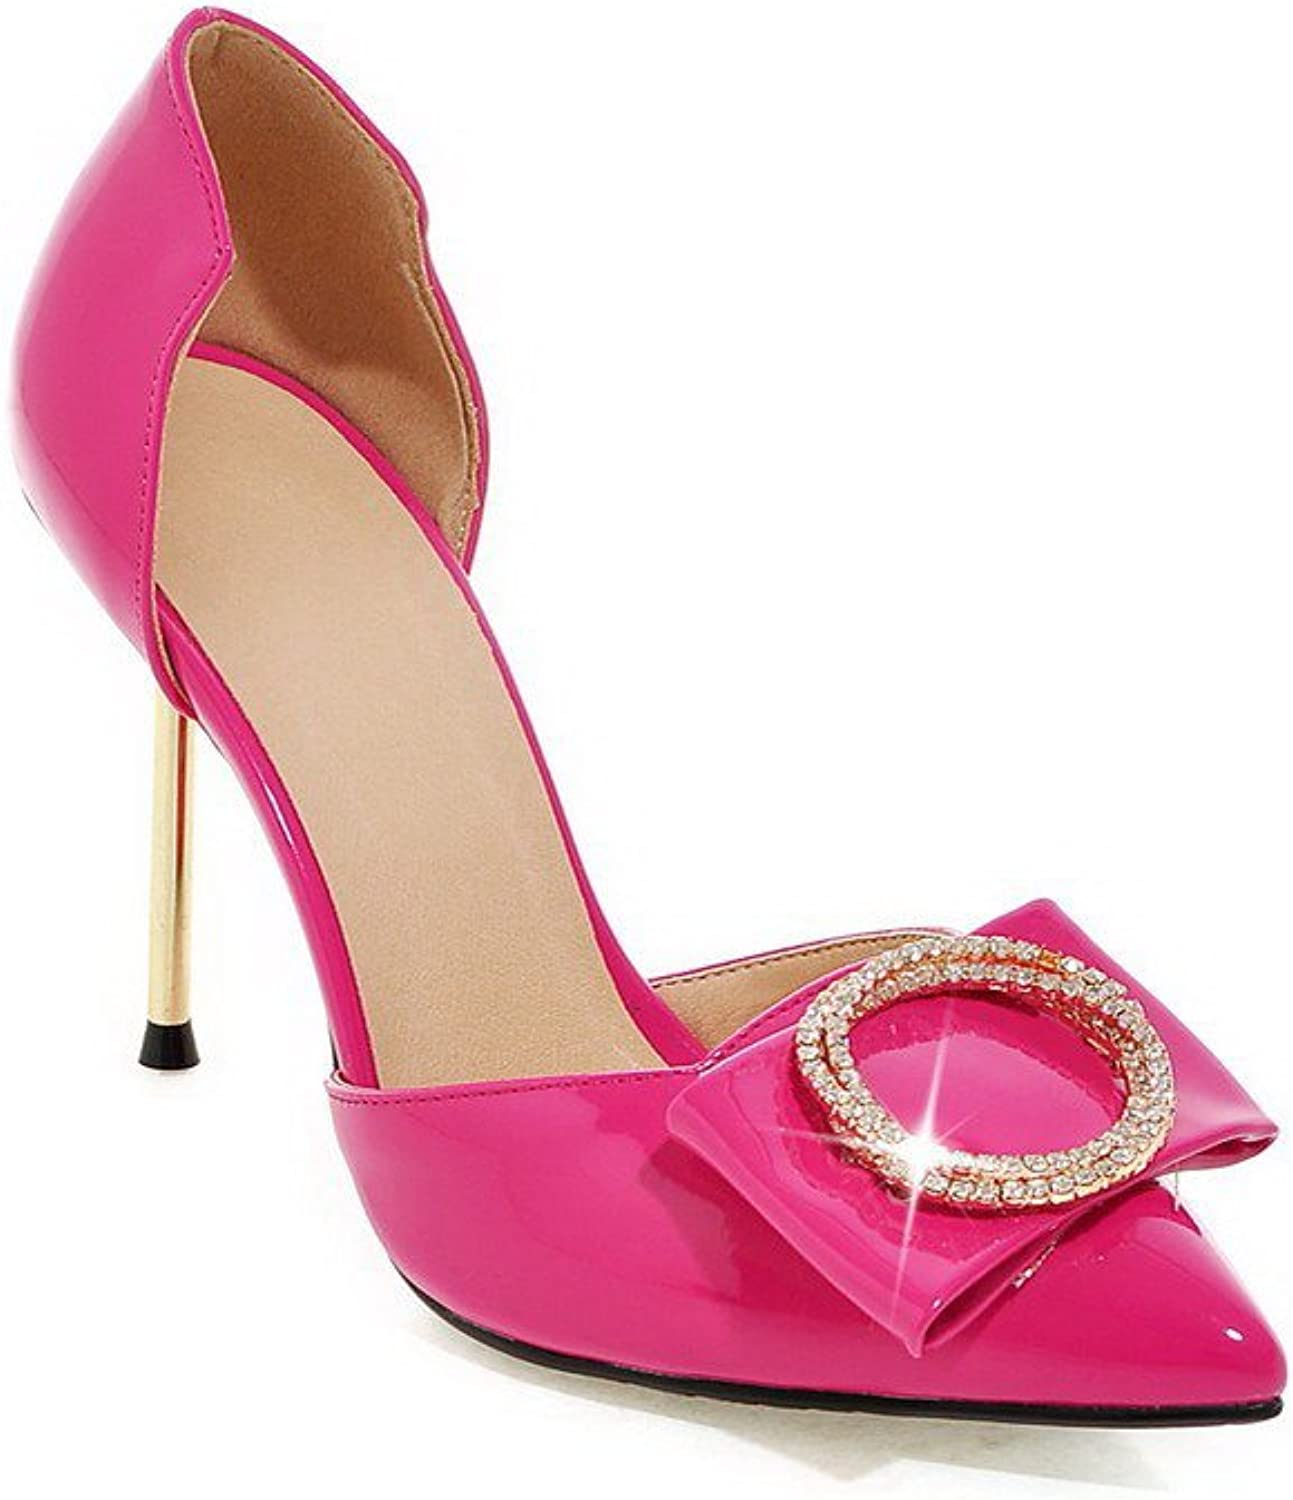 WeenFashion Women's Patent Leather Pointed Closed Toe High-Heels Pull-on Solid Sandals